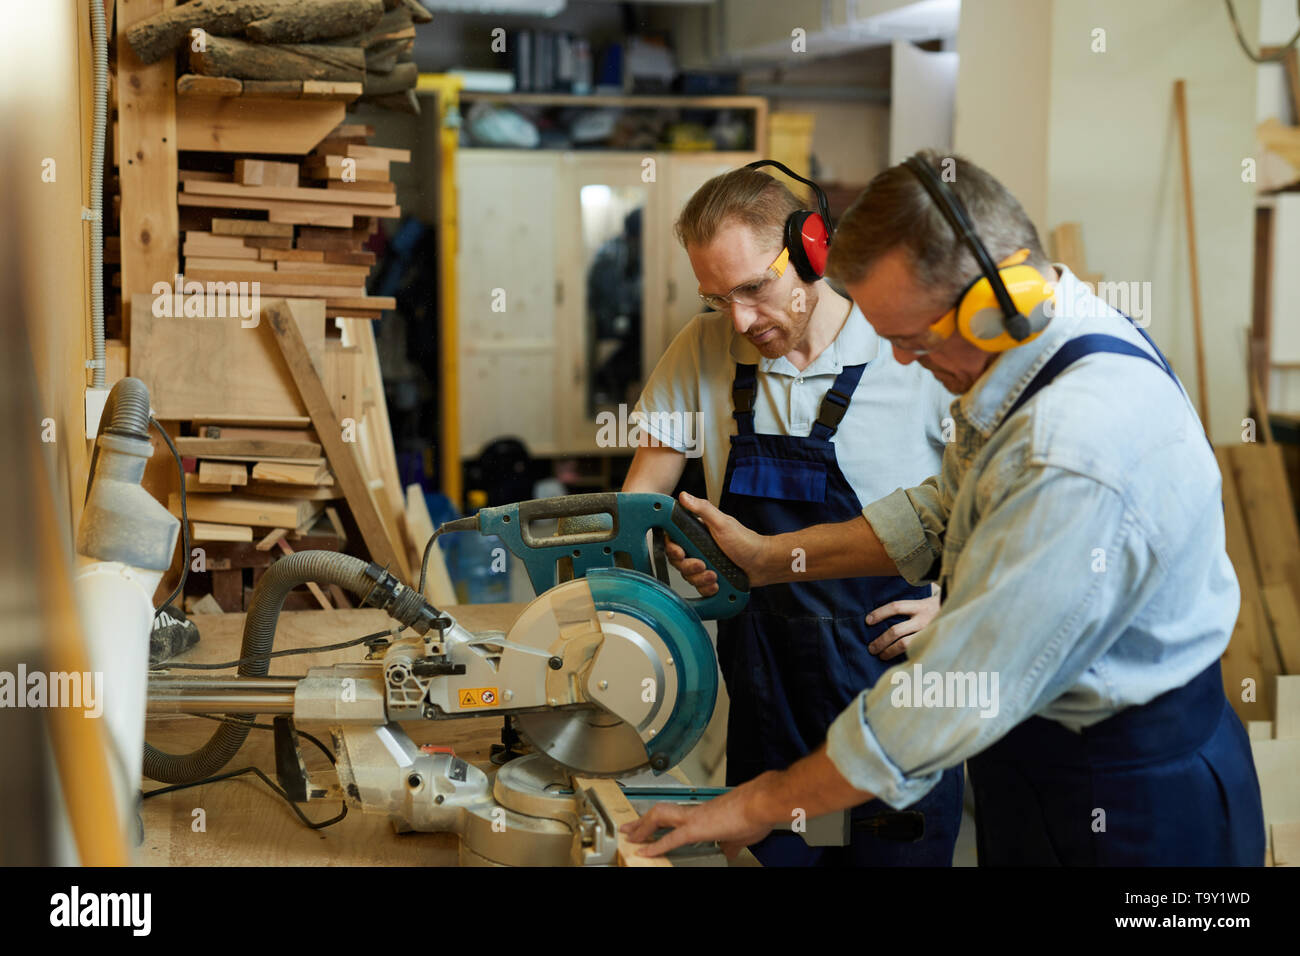 Side view portrait of  carpenter cutting wood using disksaw while working in joinery workshop, copy space - Stock Image